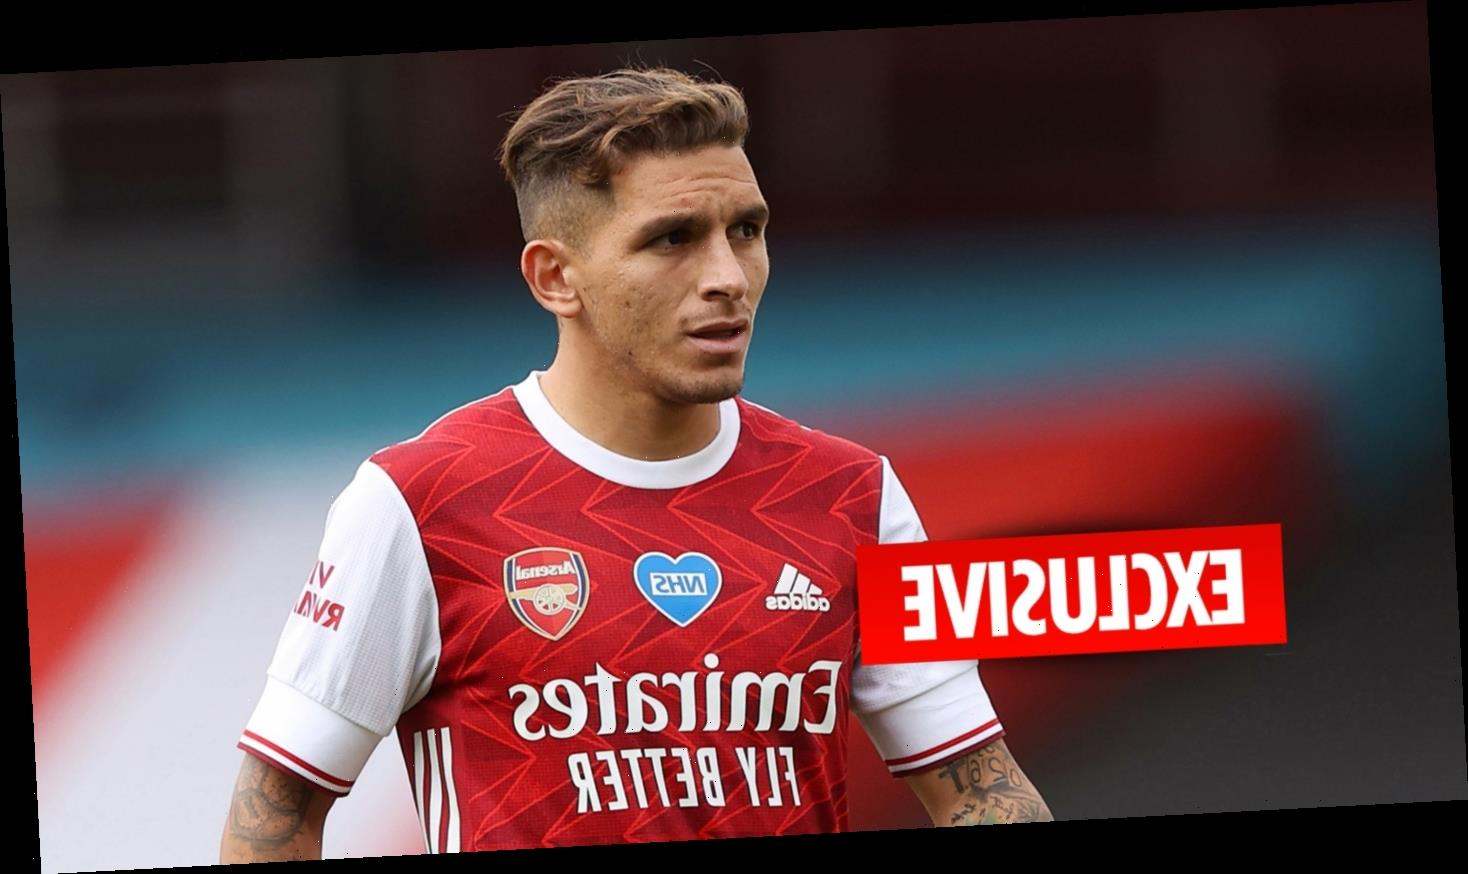 Lucas Torreira's Arsenal career all-but over as he closes in on Atletico Madrid loan transfer with option to buy